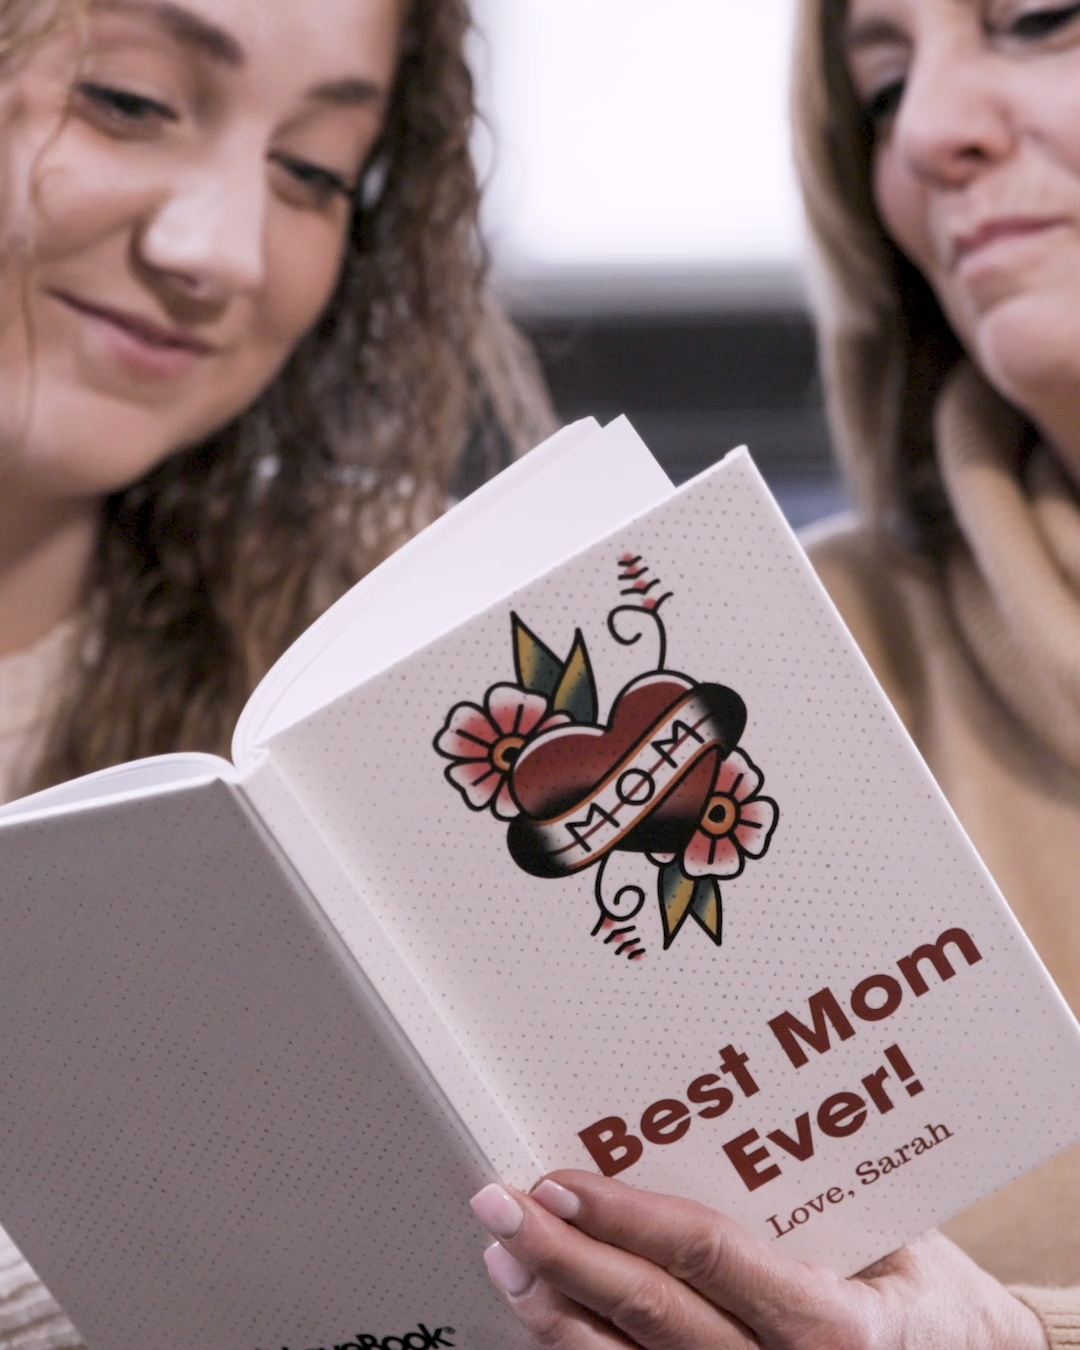 It's so simple. This Mother's Day, tell mom why you love her in her own special book. LoveBook helps you create this special, one-of-a-kind gift that will have her crying tears of happiness. Fun to create, even more fun to give.